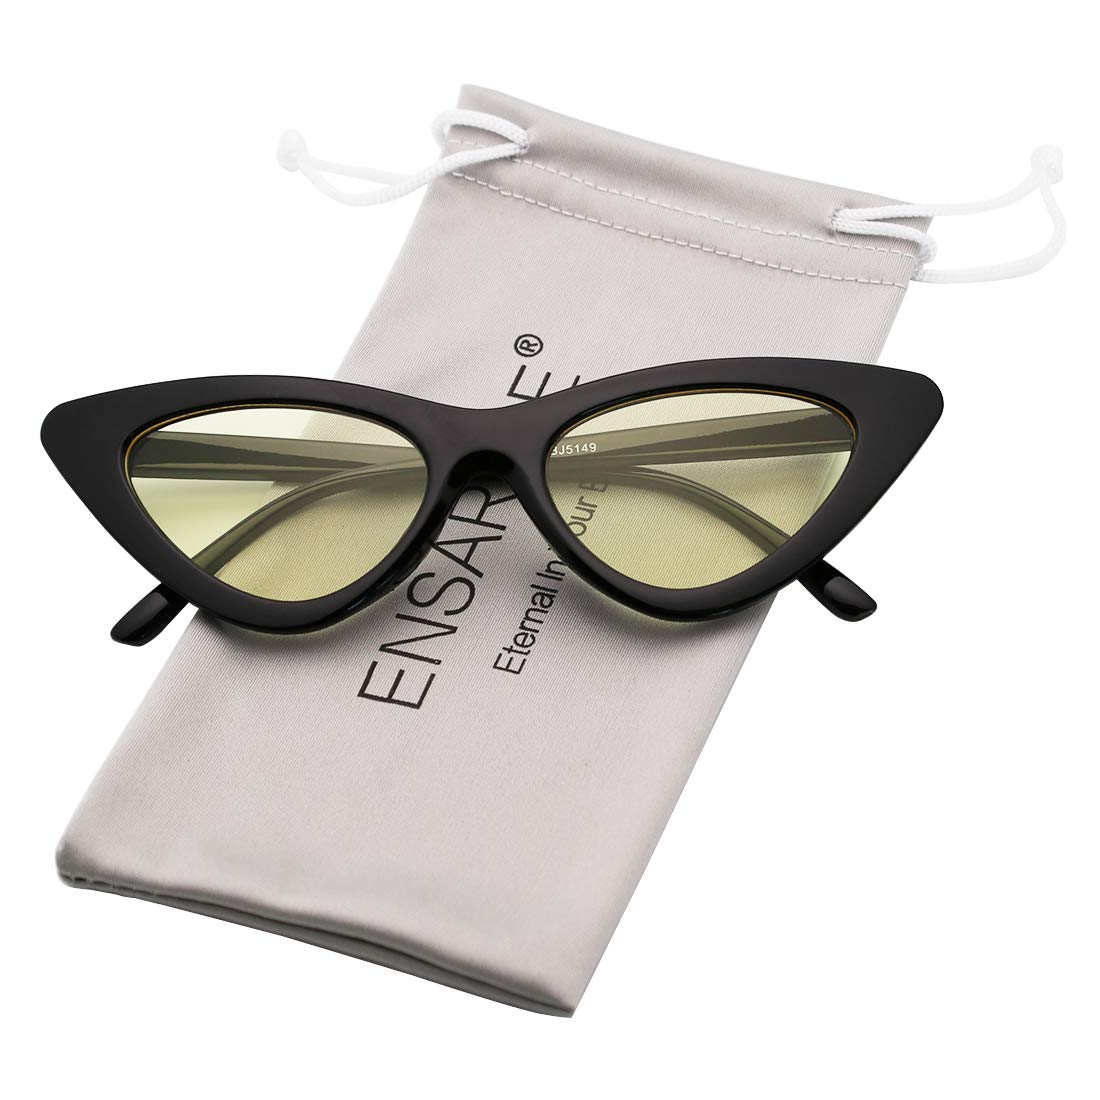 ad4d34ed1792e ENSARJOE Retro Vintage Trendy Cat Eye Sunglasses For Women Clout Goggles  Plastic Frame Glasses